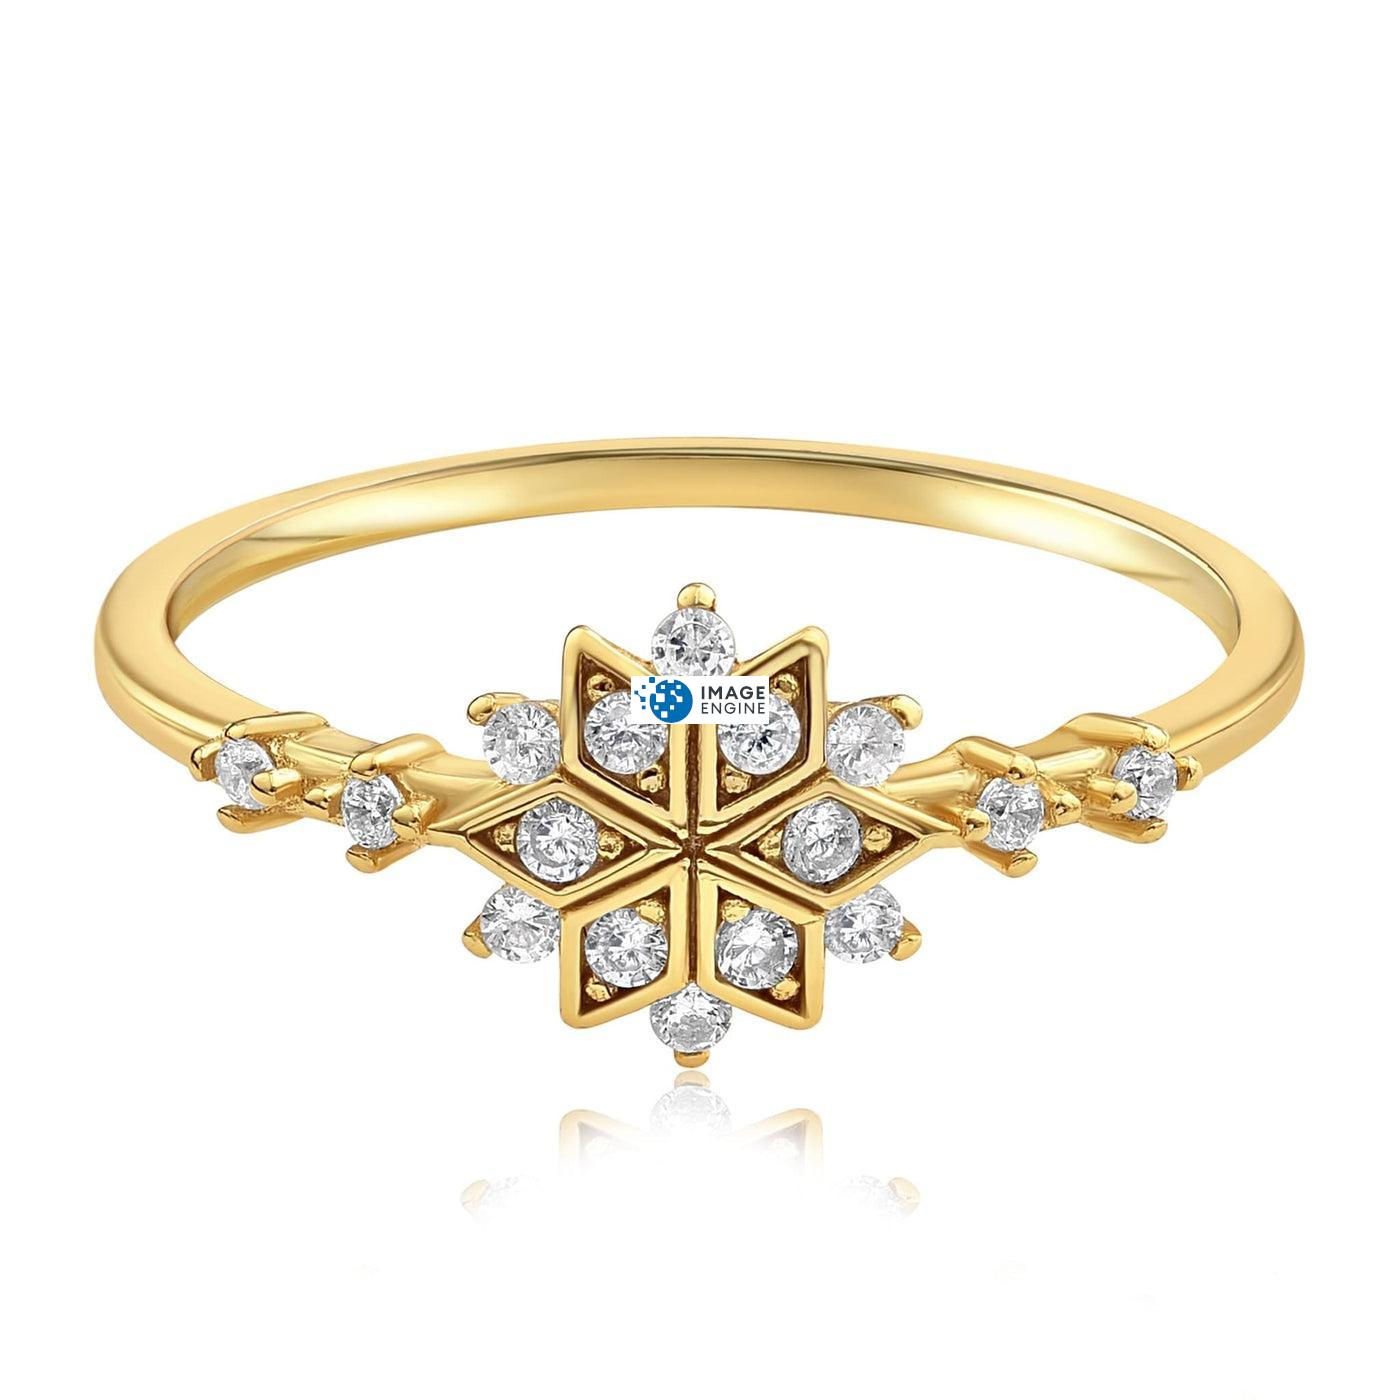 Sophia Snowflake Ring - Front View Facing Down - 18K Yellow Gold Vermeil